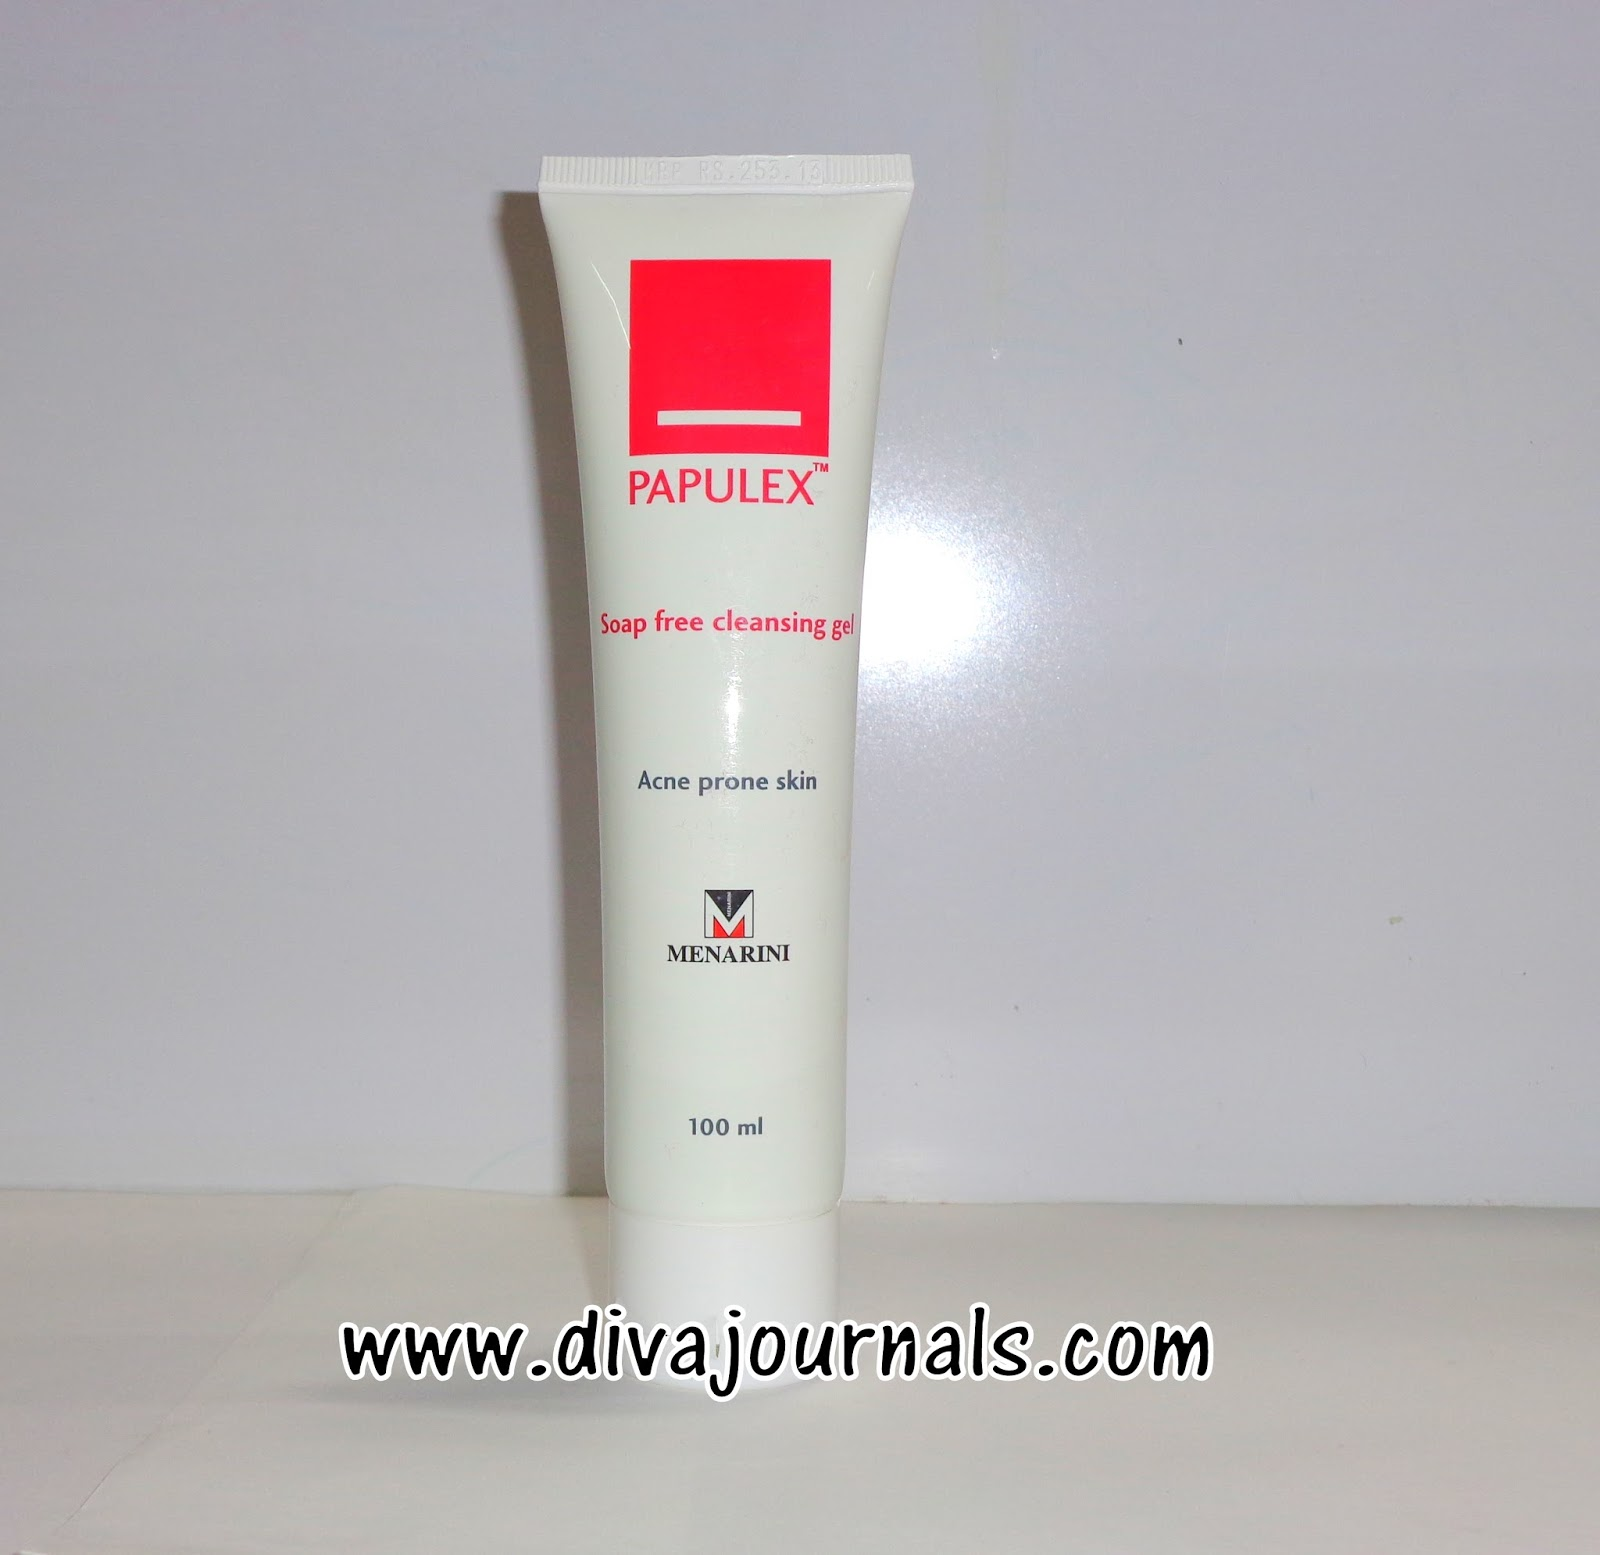 Papulex Soap-free Cleansing Gel